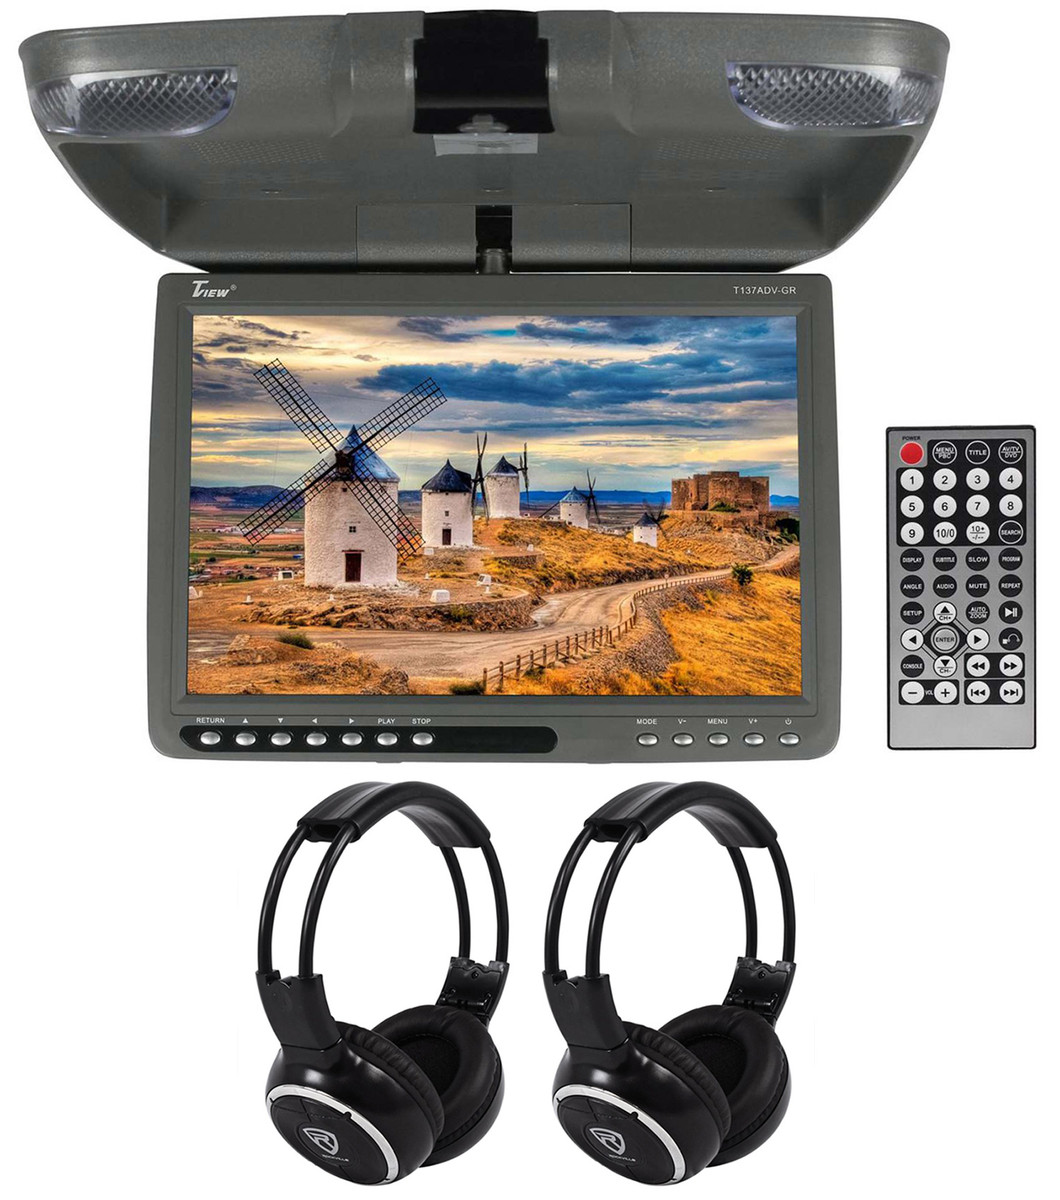 Tview T137adv 13 Gray Car Dvd Receiver Usb Sd Dome Light Wireless Headphones Rockville Audio